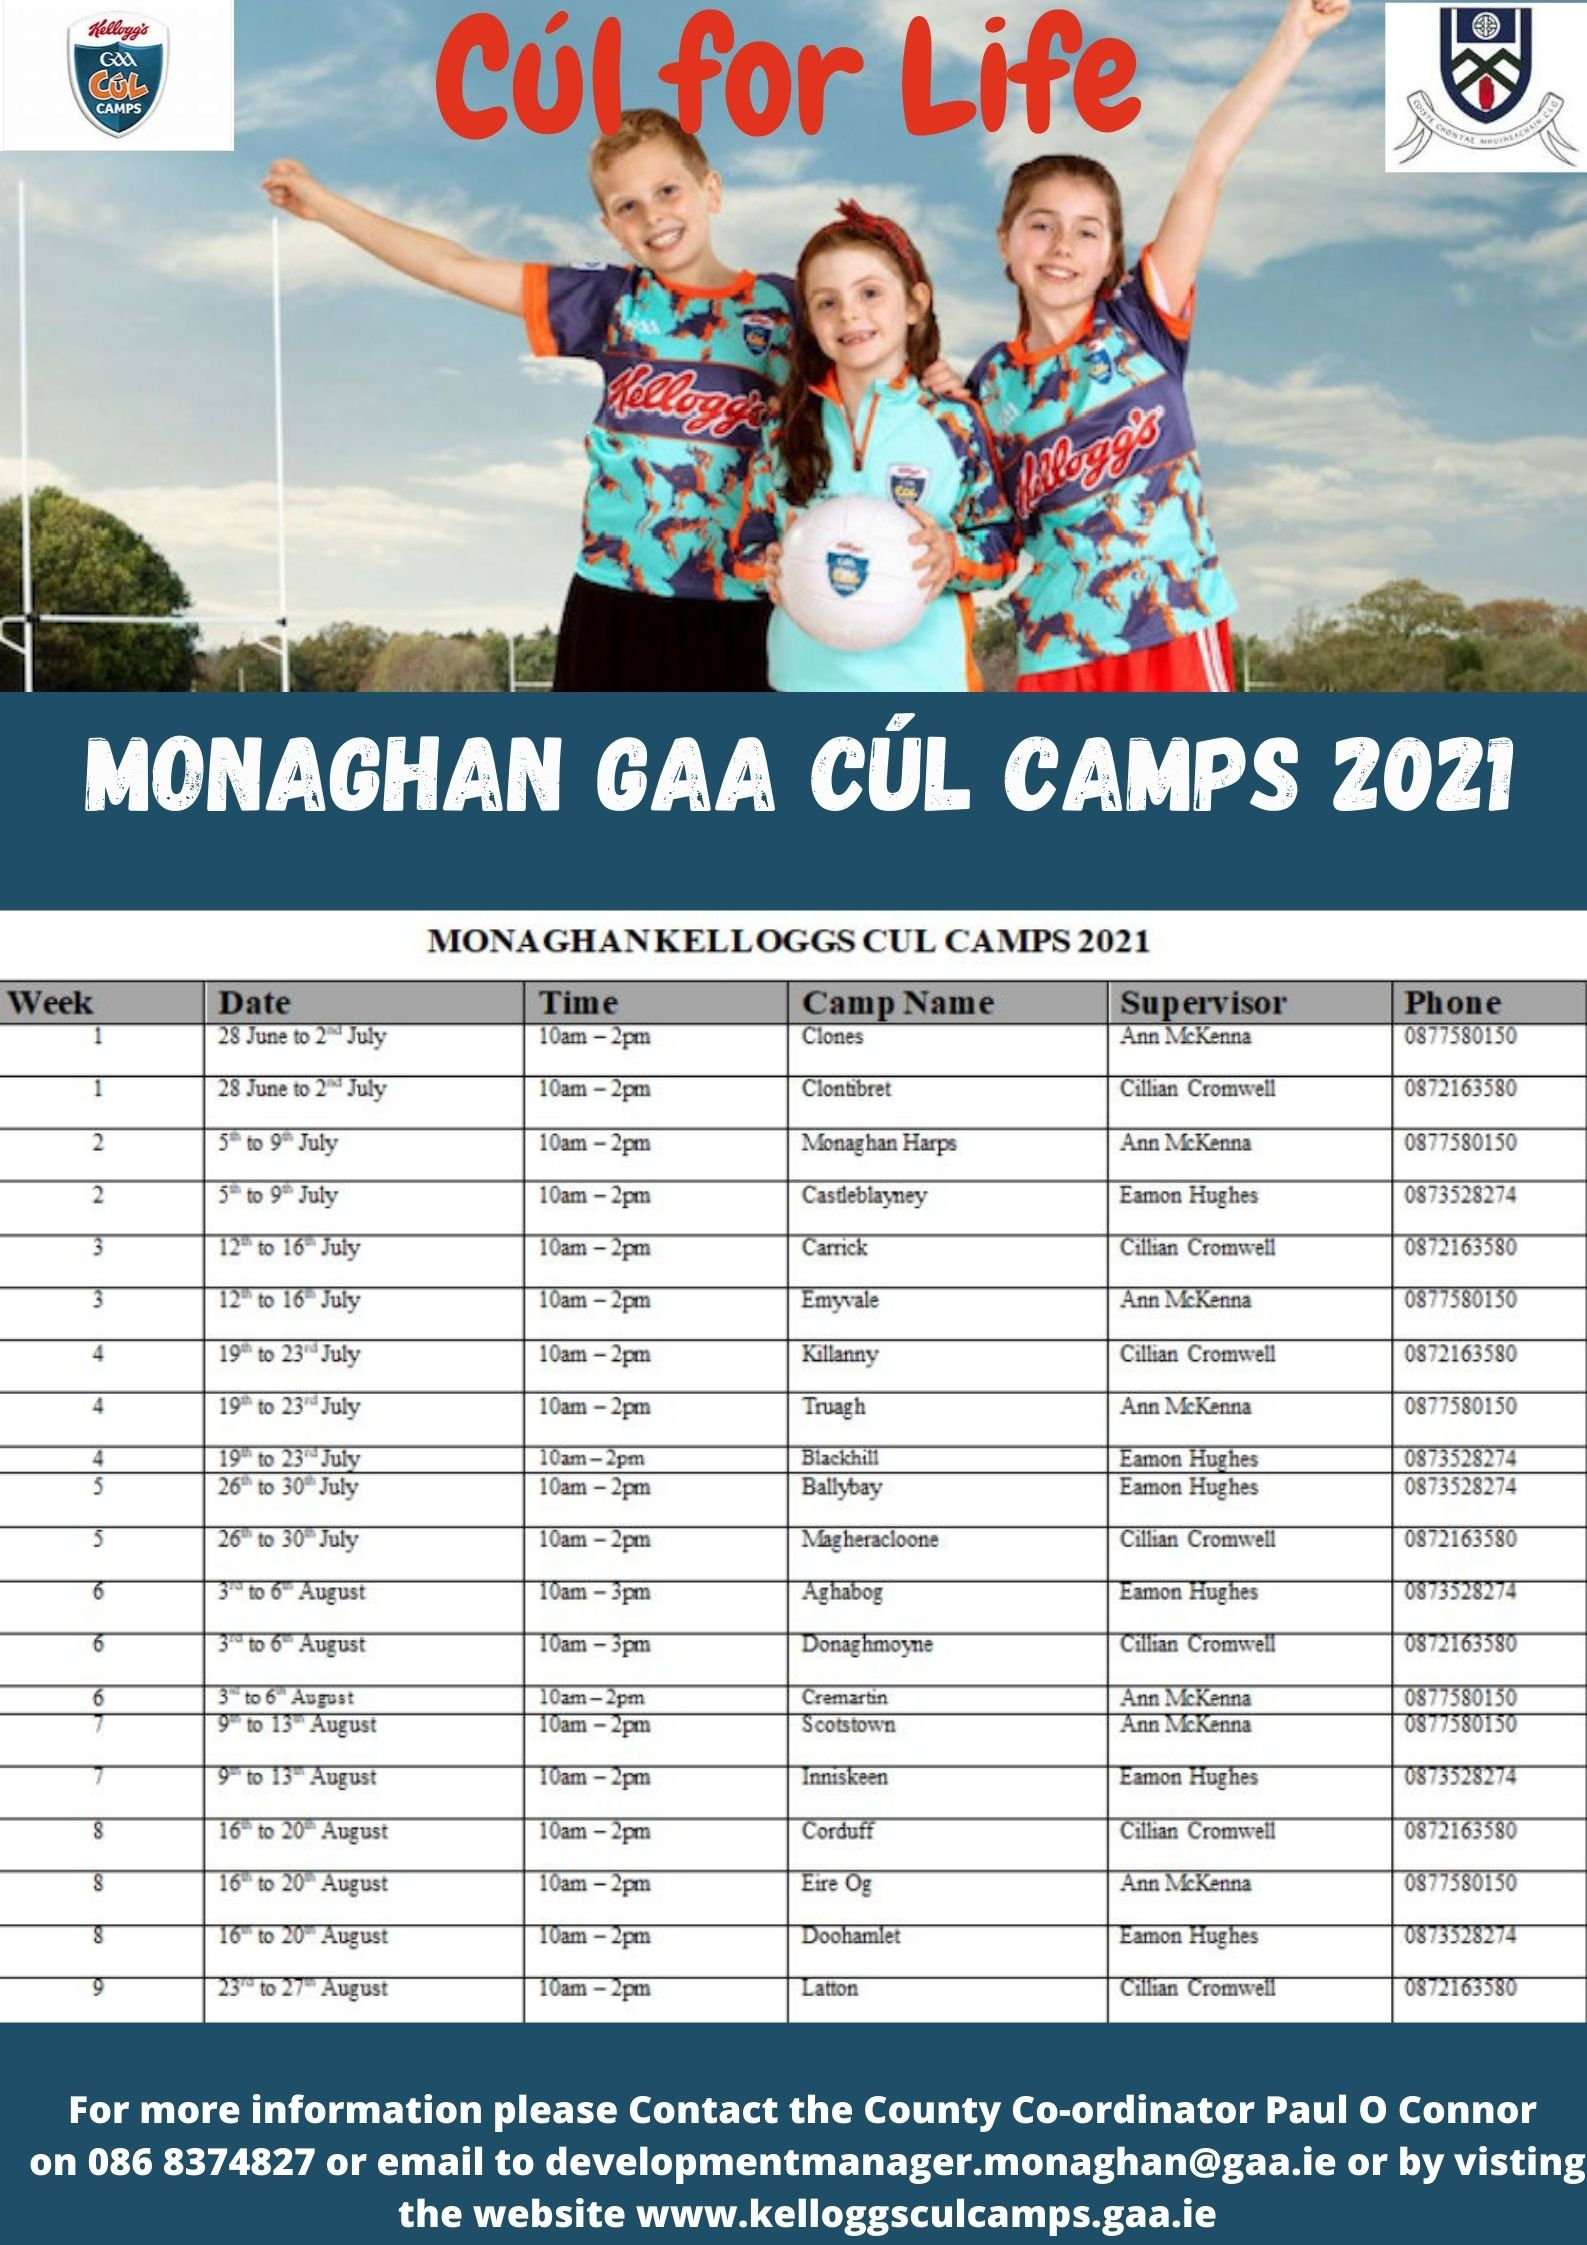 GAA CÚL CAMPS 2021 are back and ready for Fun